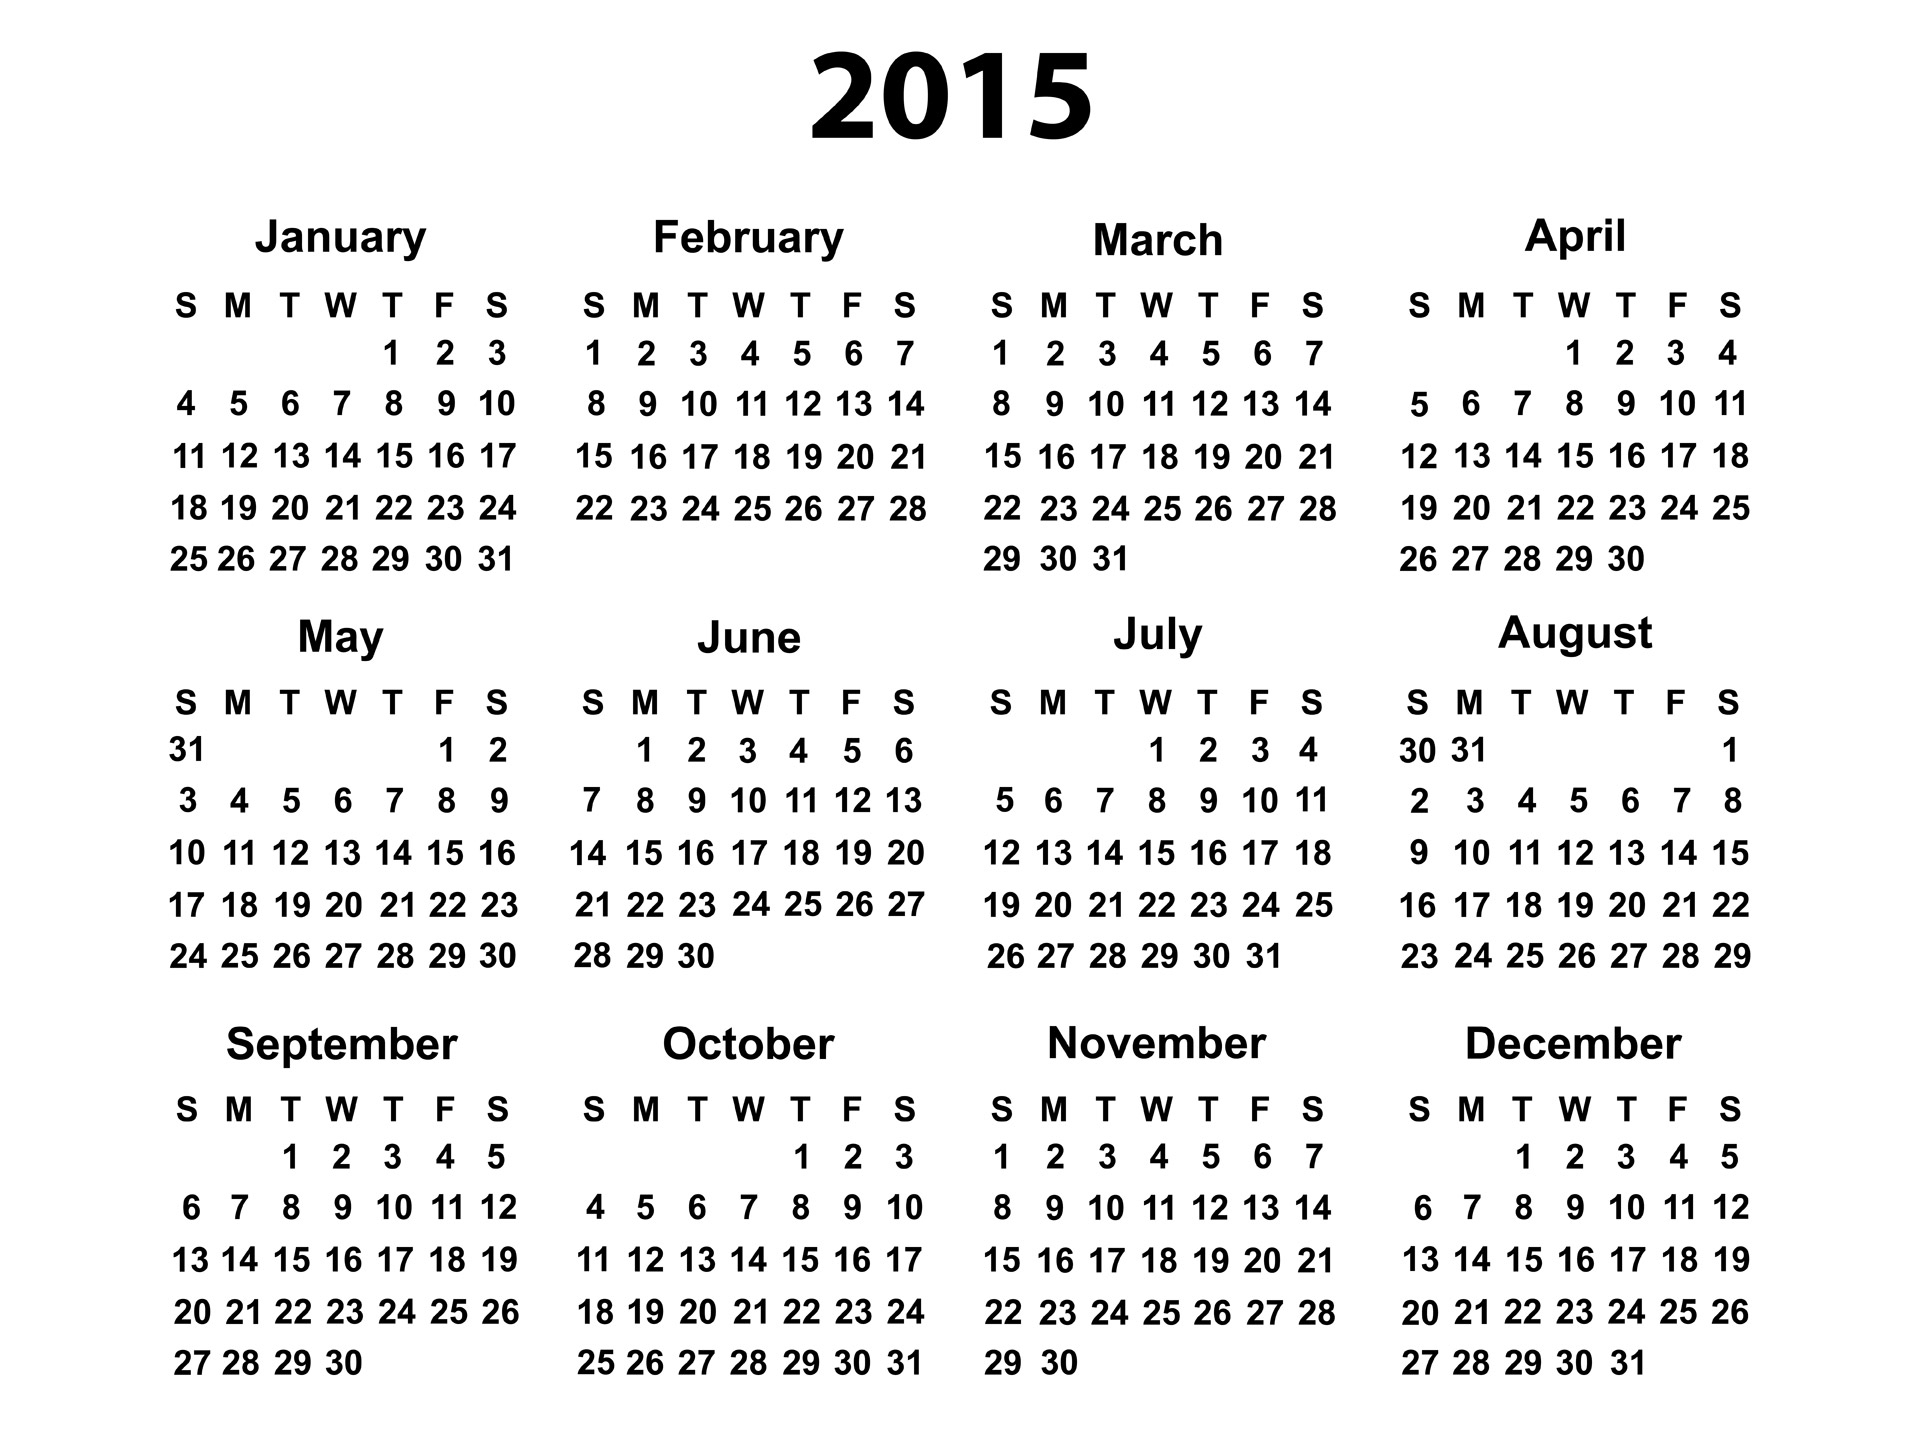 12 2015 Yearly Calendar Template Images - 2015 Calendar, 2015 Yearly for 2014 12 Month Blank Calendar